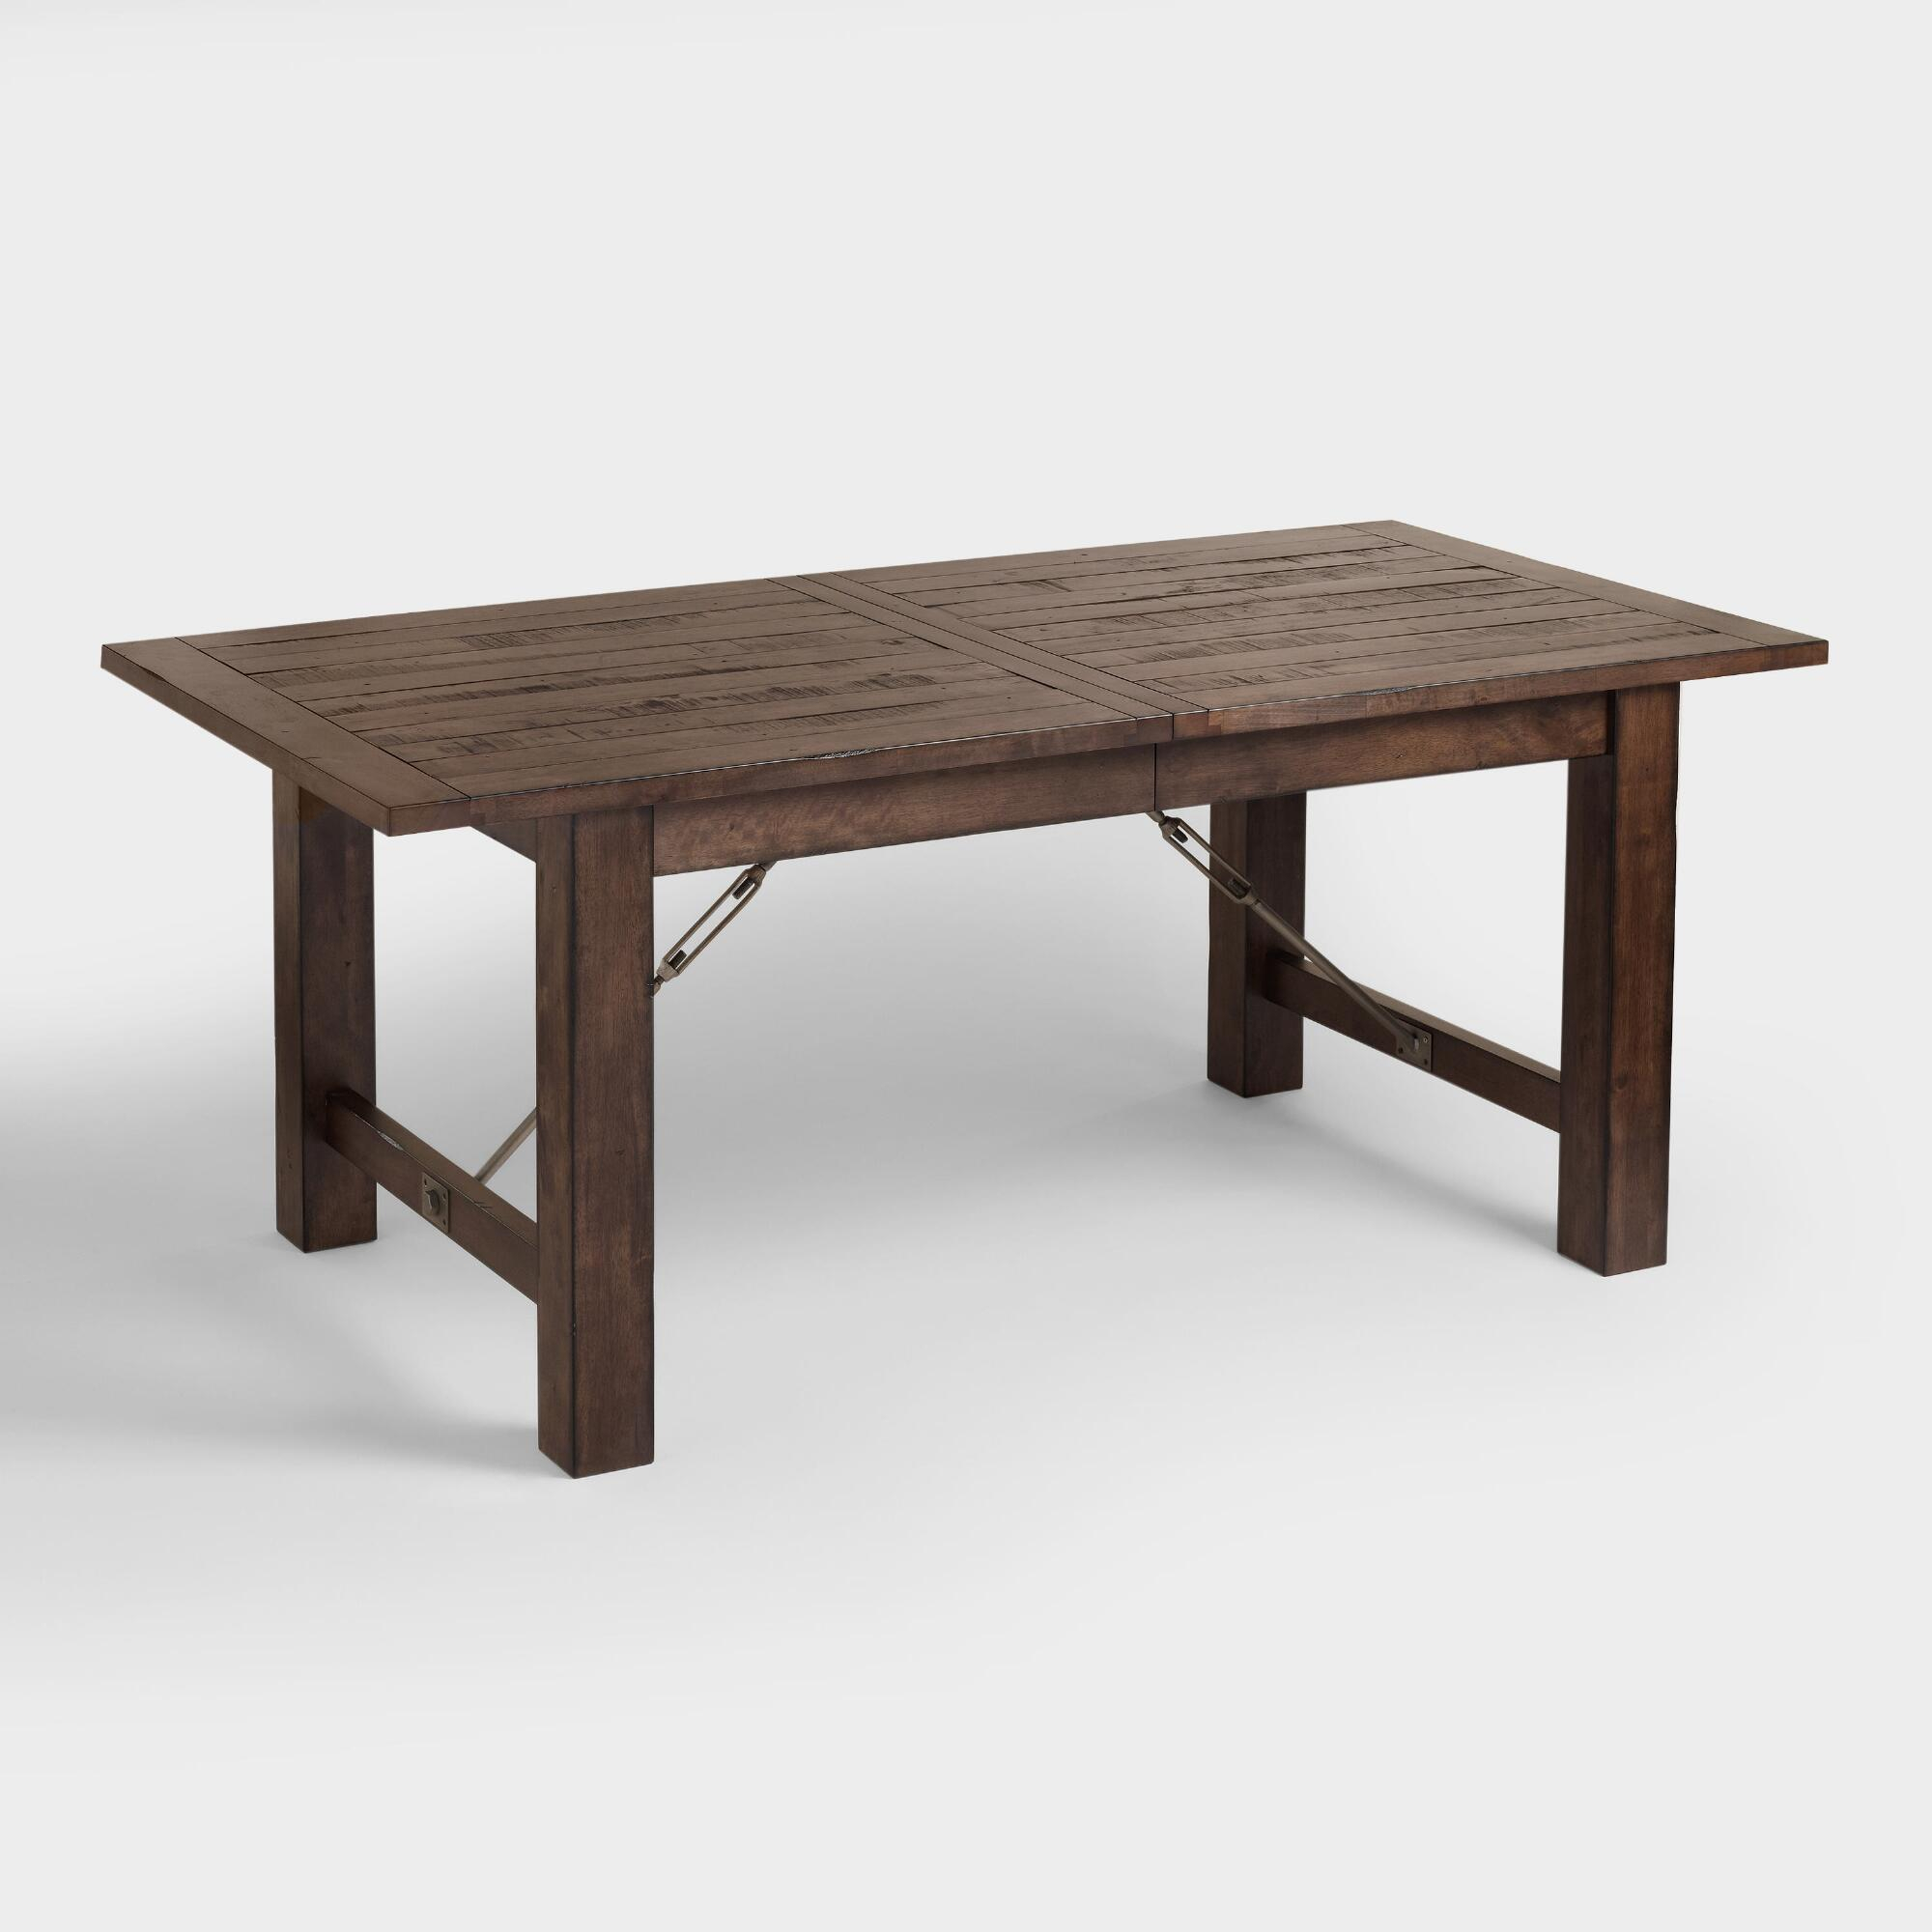 Wood Garner Extension Dining Table: Brownworld Market In Regarding Most Recent Rustic Mahogany Extending Dining Tables (View 5 of 25)